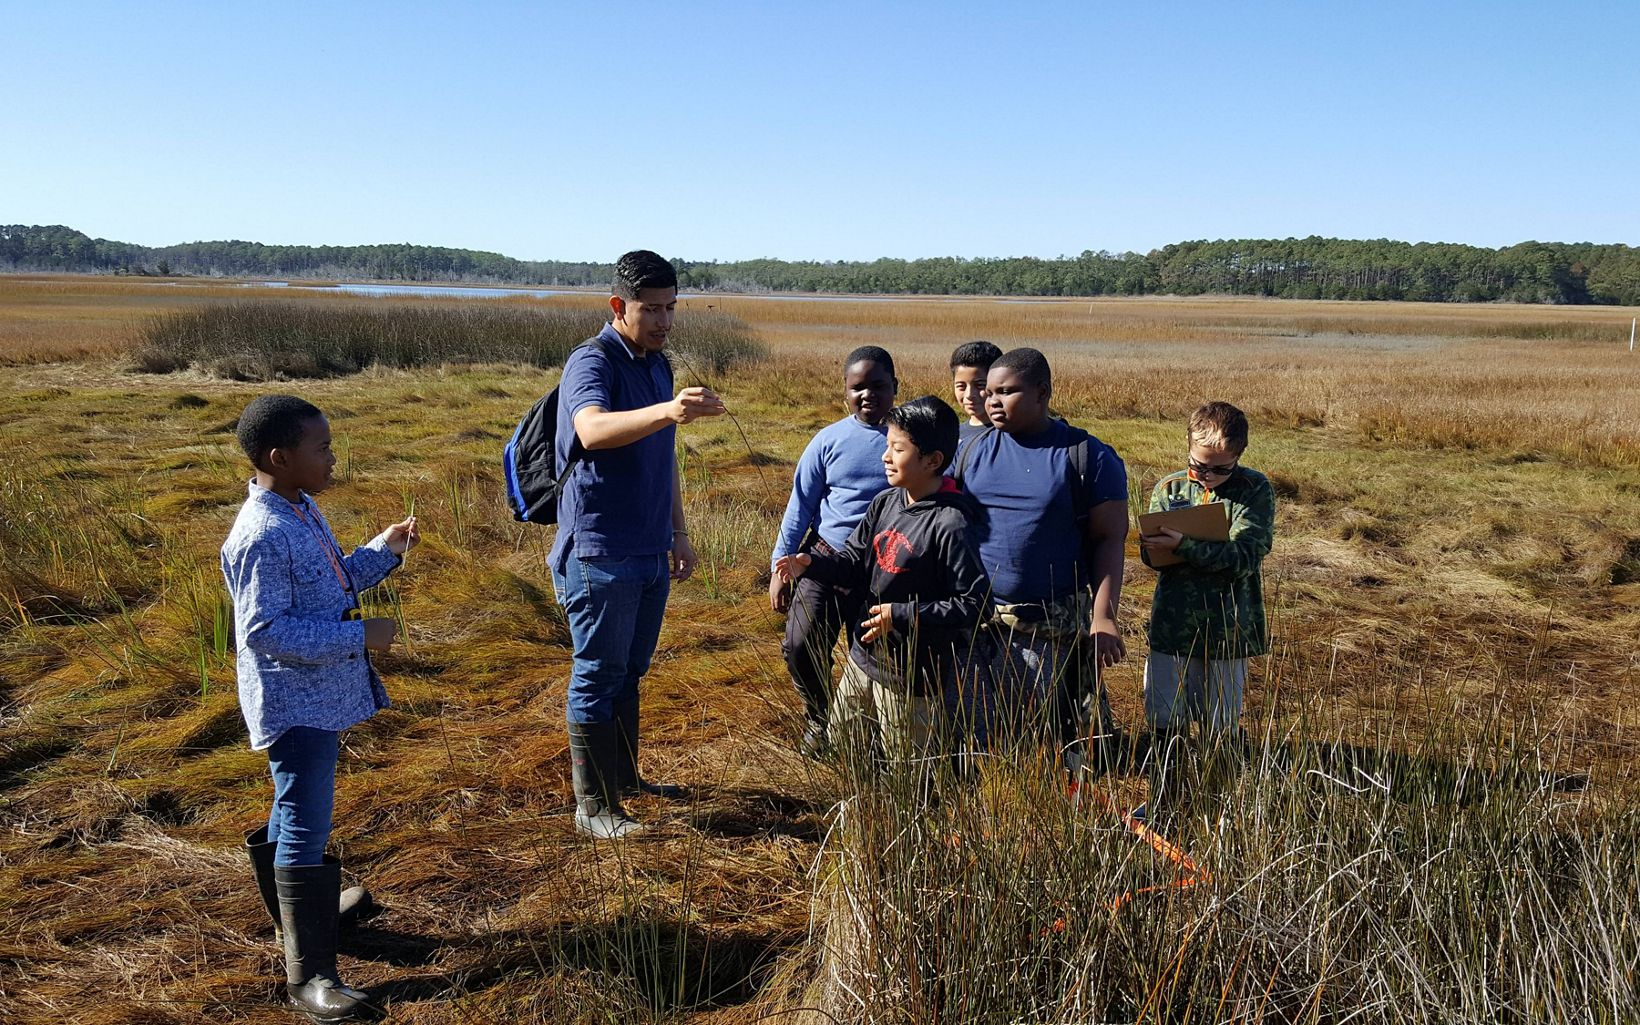 A parent chaperone leads a group a boys through the seaside marsh grass.